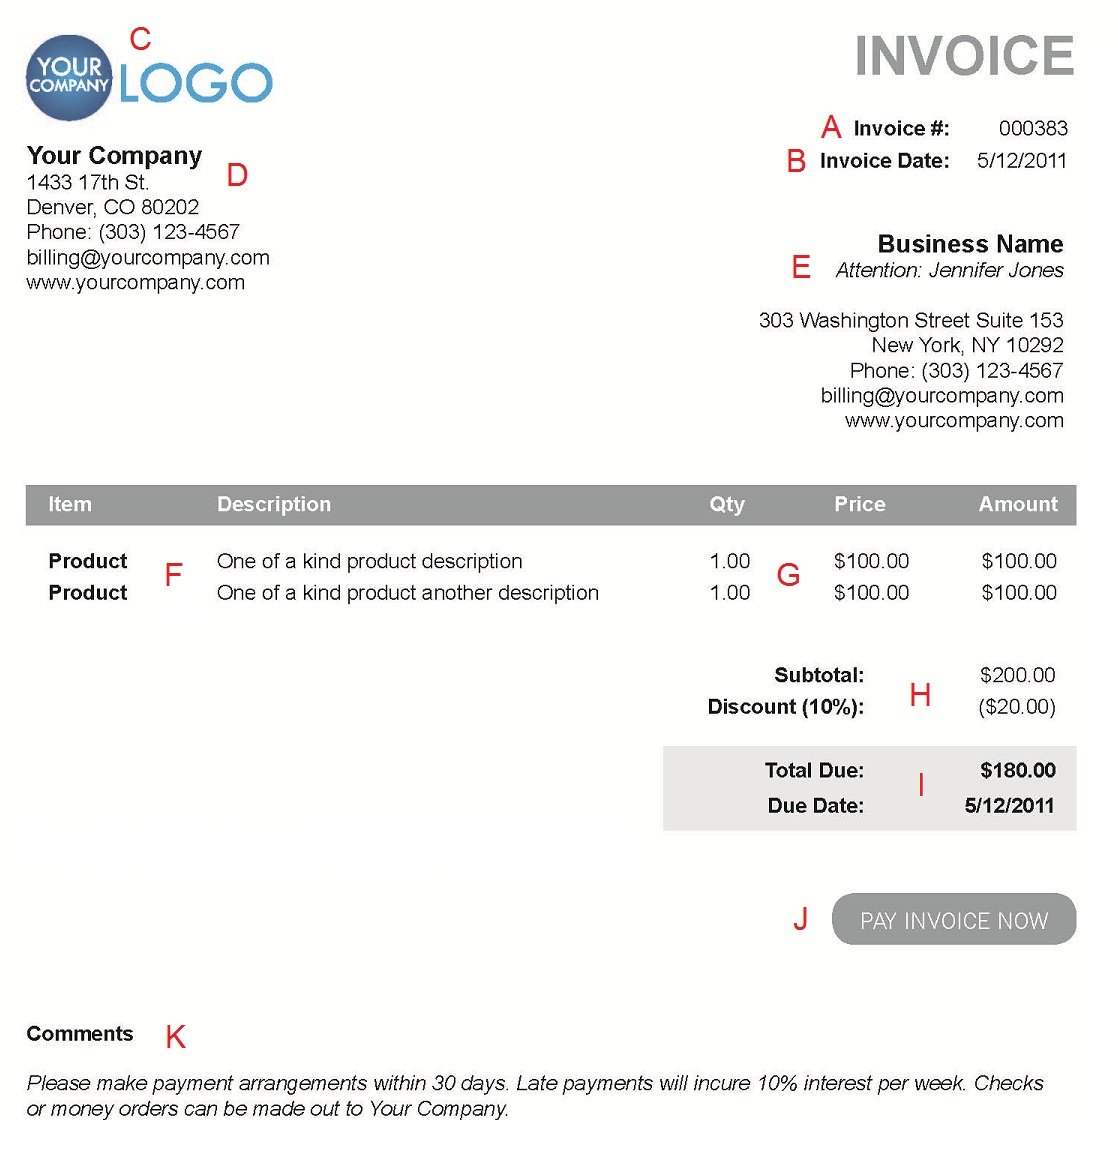 Centralasianshepherdus  Splendid The  Different Sections Of An Electronic Payment Invoice With Marvelous A  With Appealing Rogers Invoice Online Also Performa Invoice Or Proforma Invoice In Addition Terms Of Invoice And Free Invoice And Inventory Software As Well As Freelance Invoice Template Excel Additionally Invoice To Print From Paysimplecom With Centralasianshepherdus  Marvelous The  Different Sections Of An Electronic Payment Invoice With Appealing A  And Splendid Rogers Invoice Online Also Performa Invoice Or Proforma Invoice In Addition Terms Of Invoice From Paysimplecom